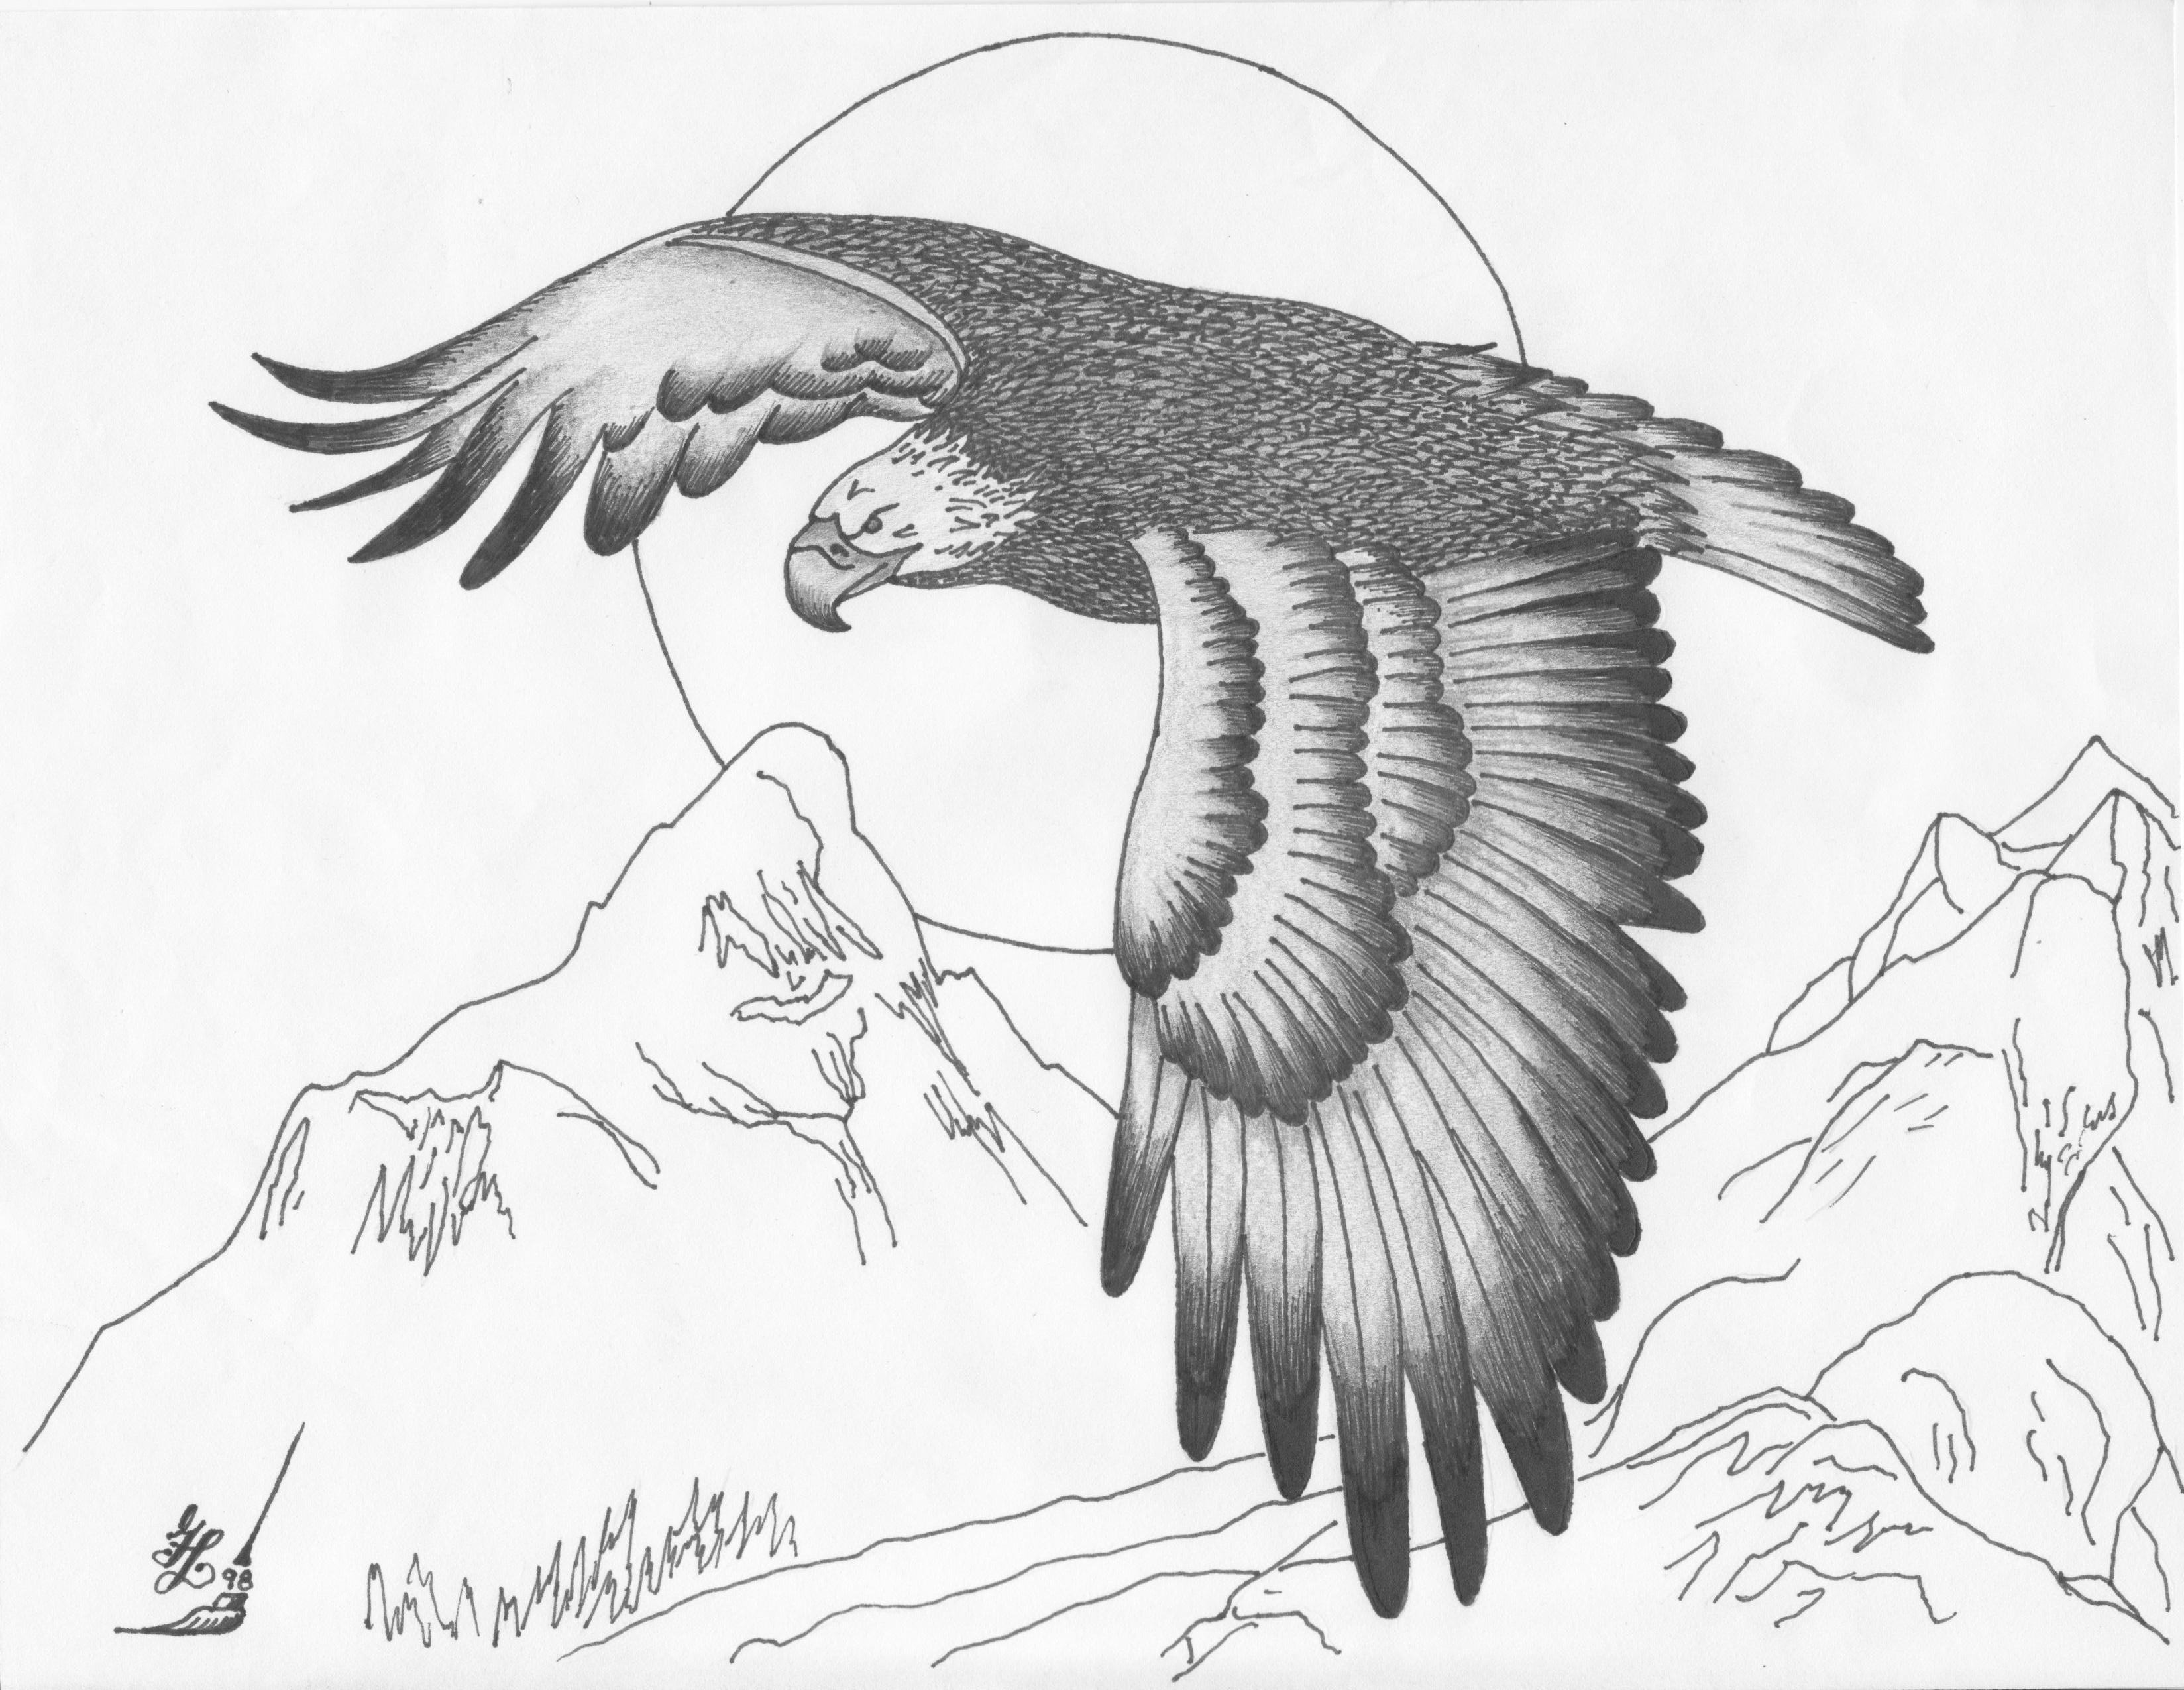 how to draw an eagle flying how to draw a eagle flying drawing art ideas an flying to draw how eagle